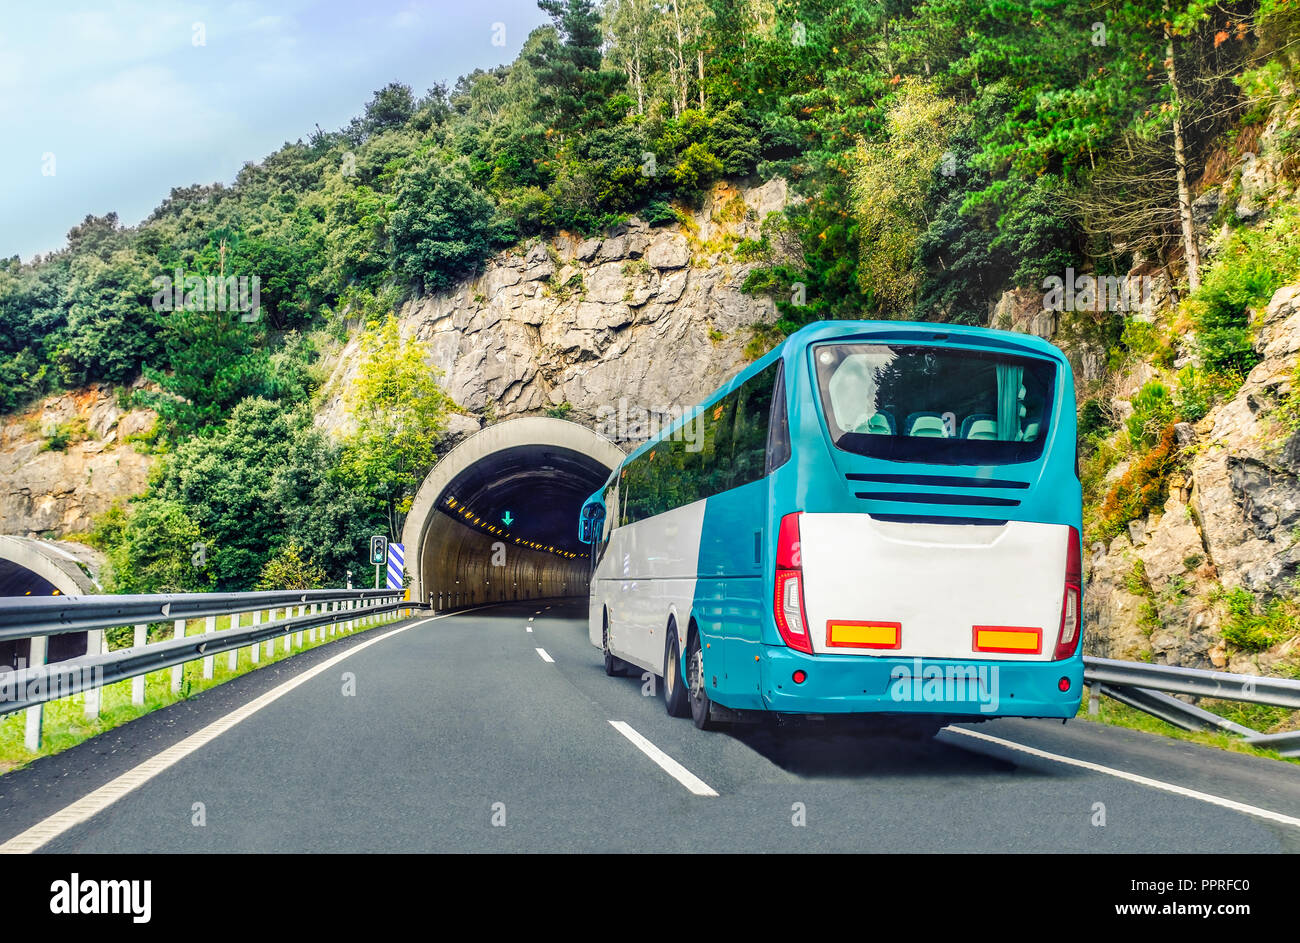 A white and blue coach, or long haul bus for tourists drives through the mountain tunnels and roads of Northern Spain, Europe on a summer day. - Stock Image